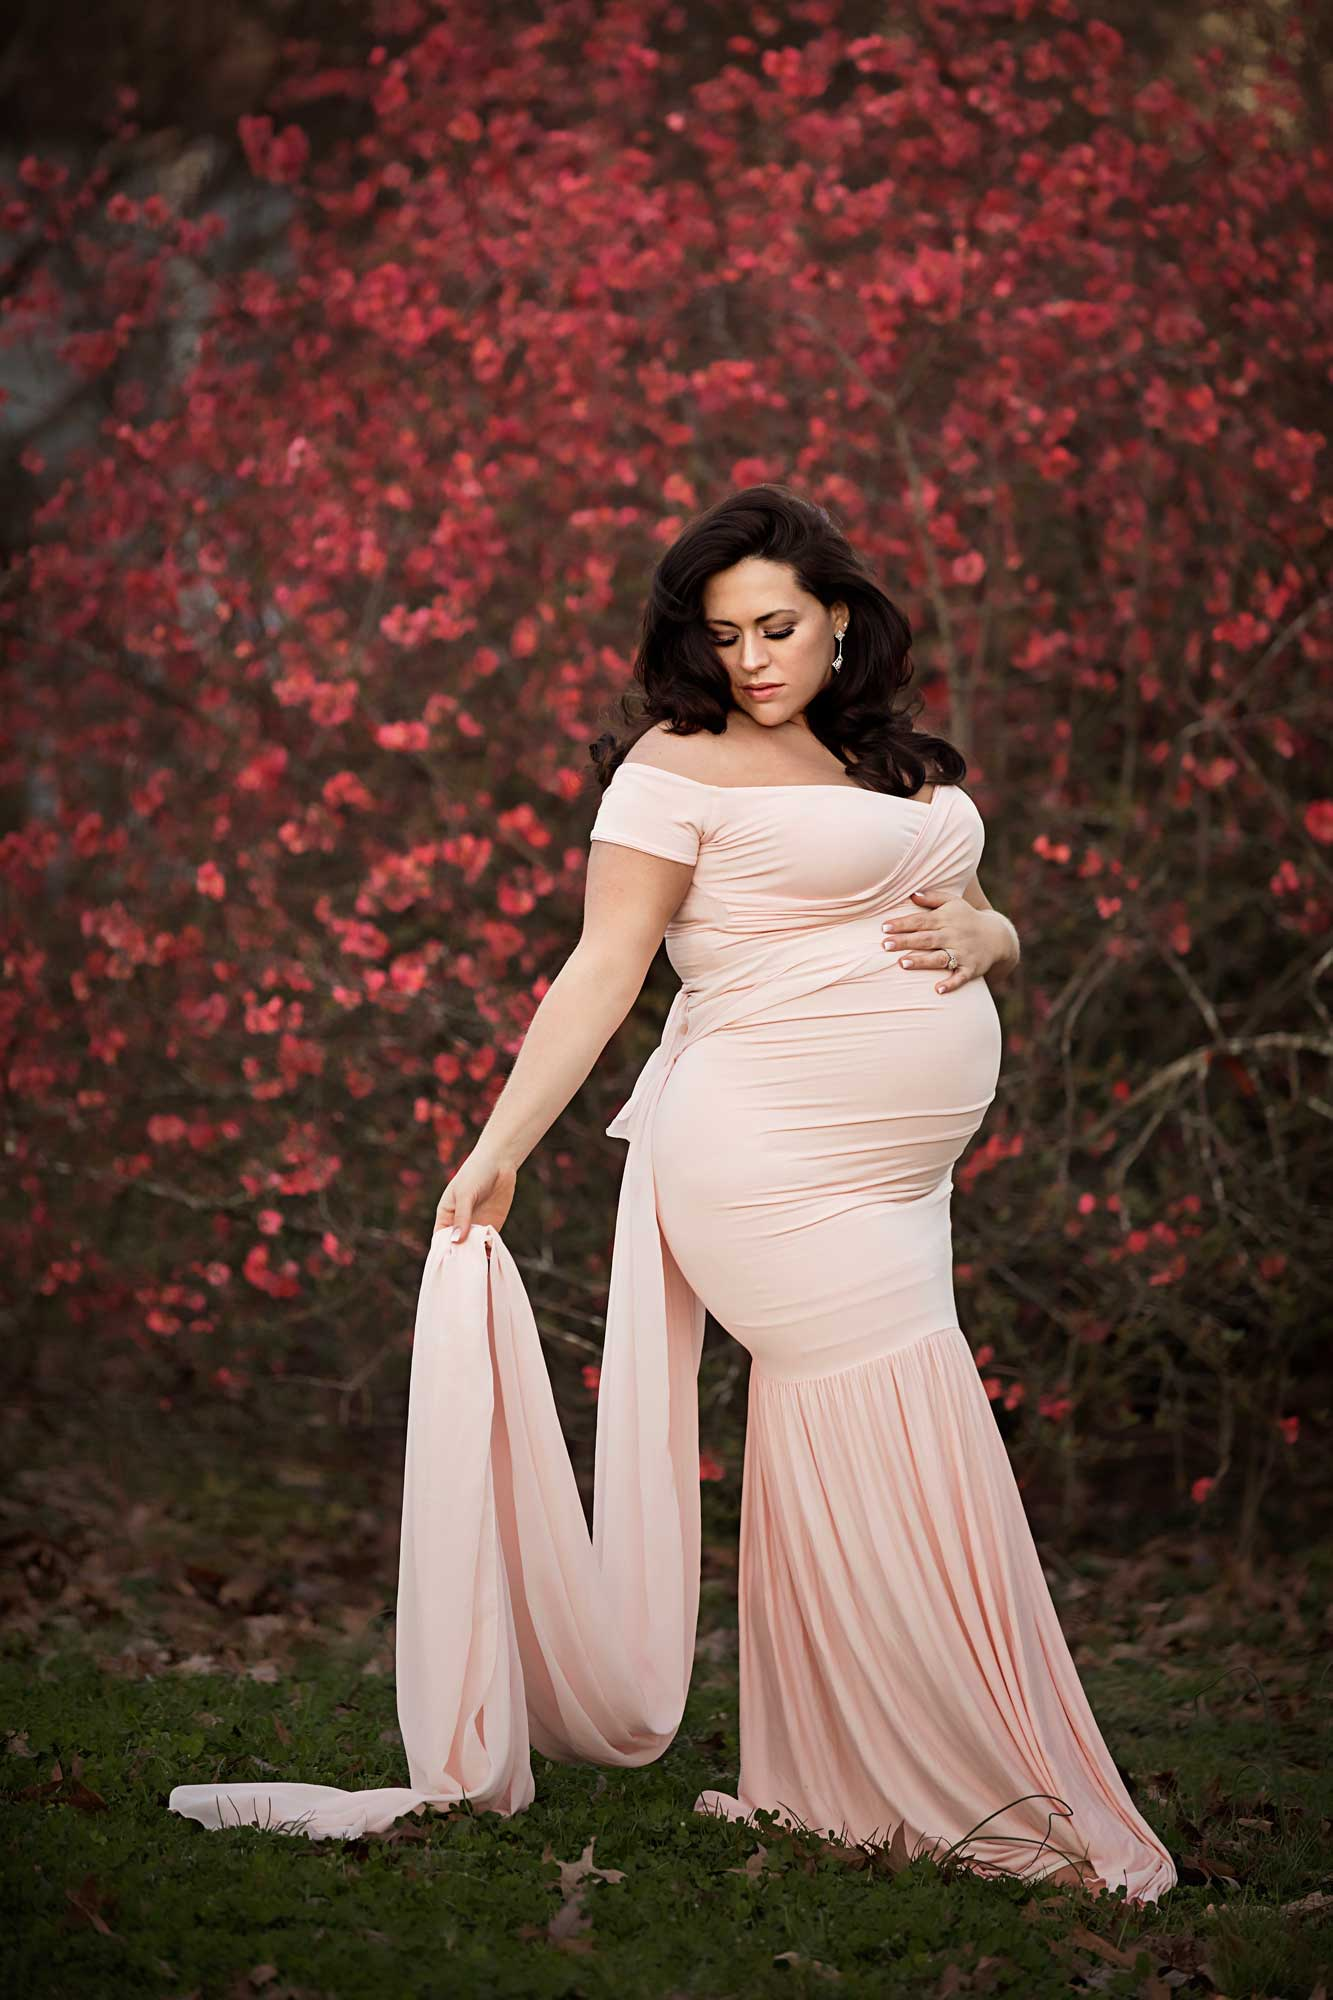 Knoxville-maternity-photographer-pregnancy-gowns.jpg